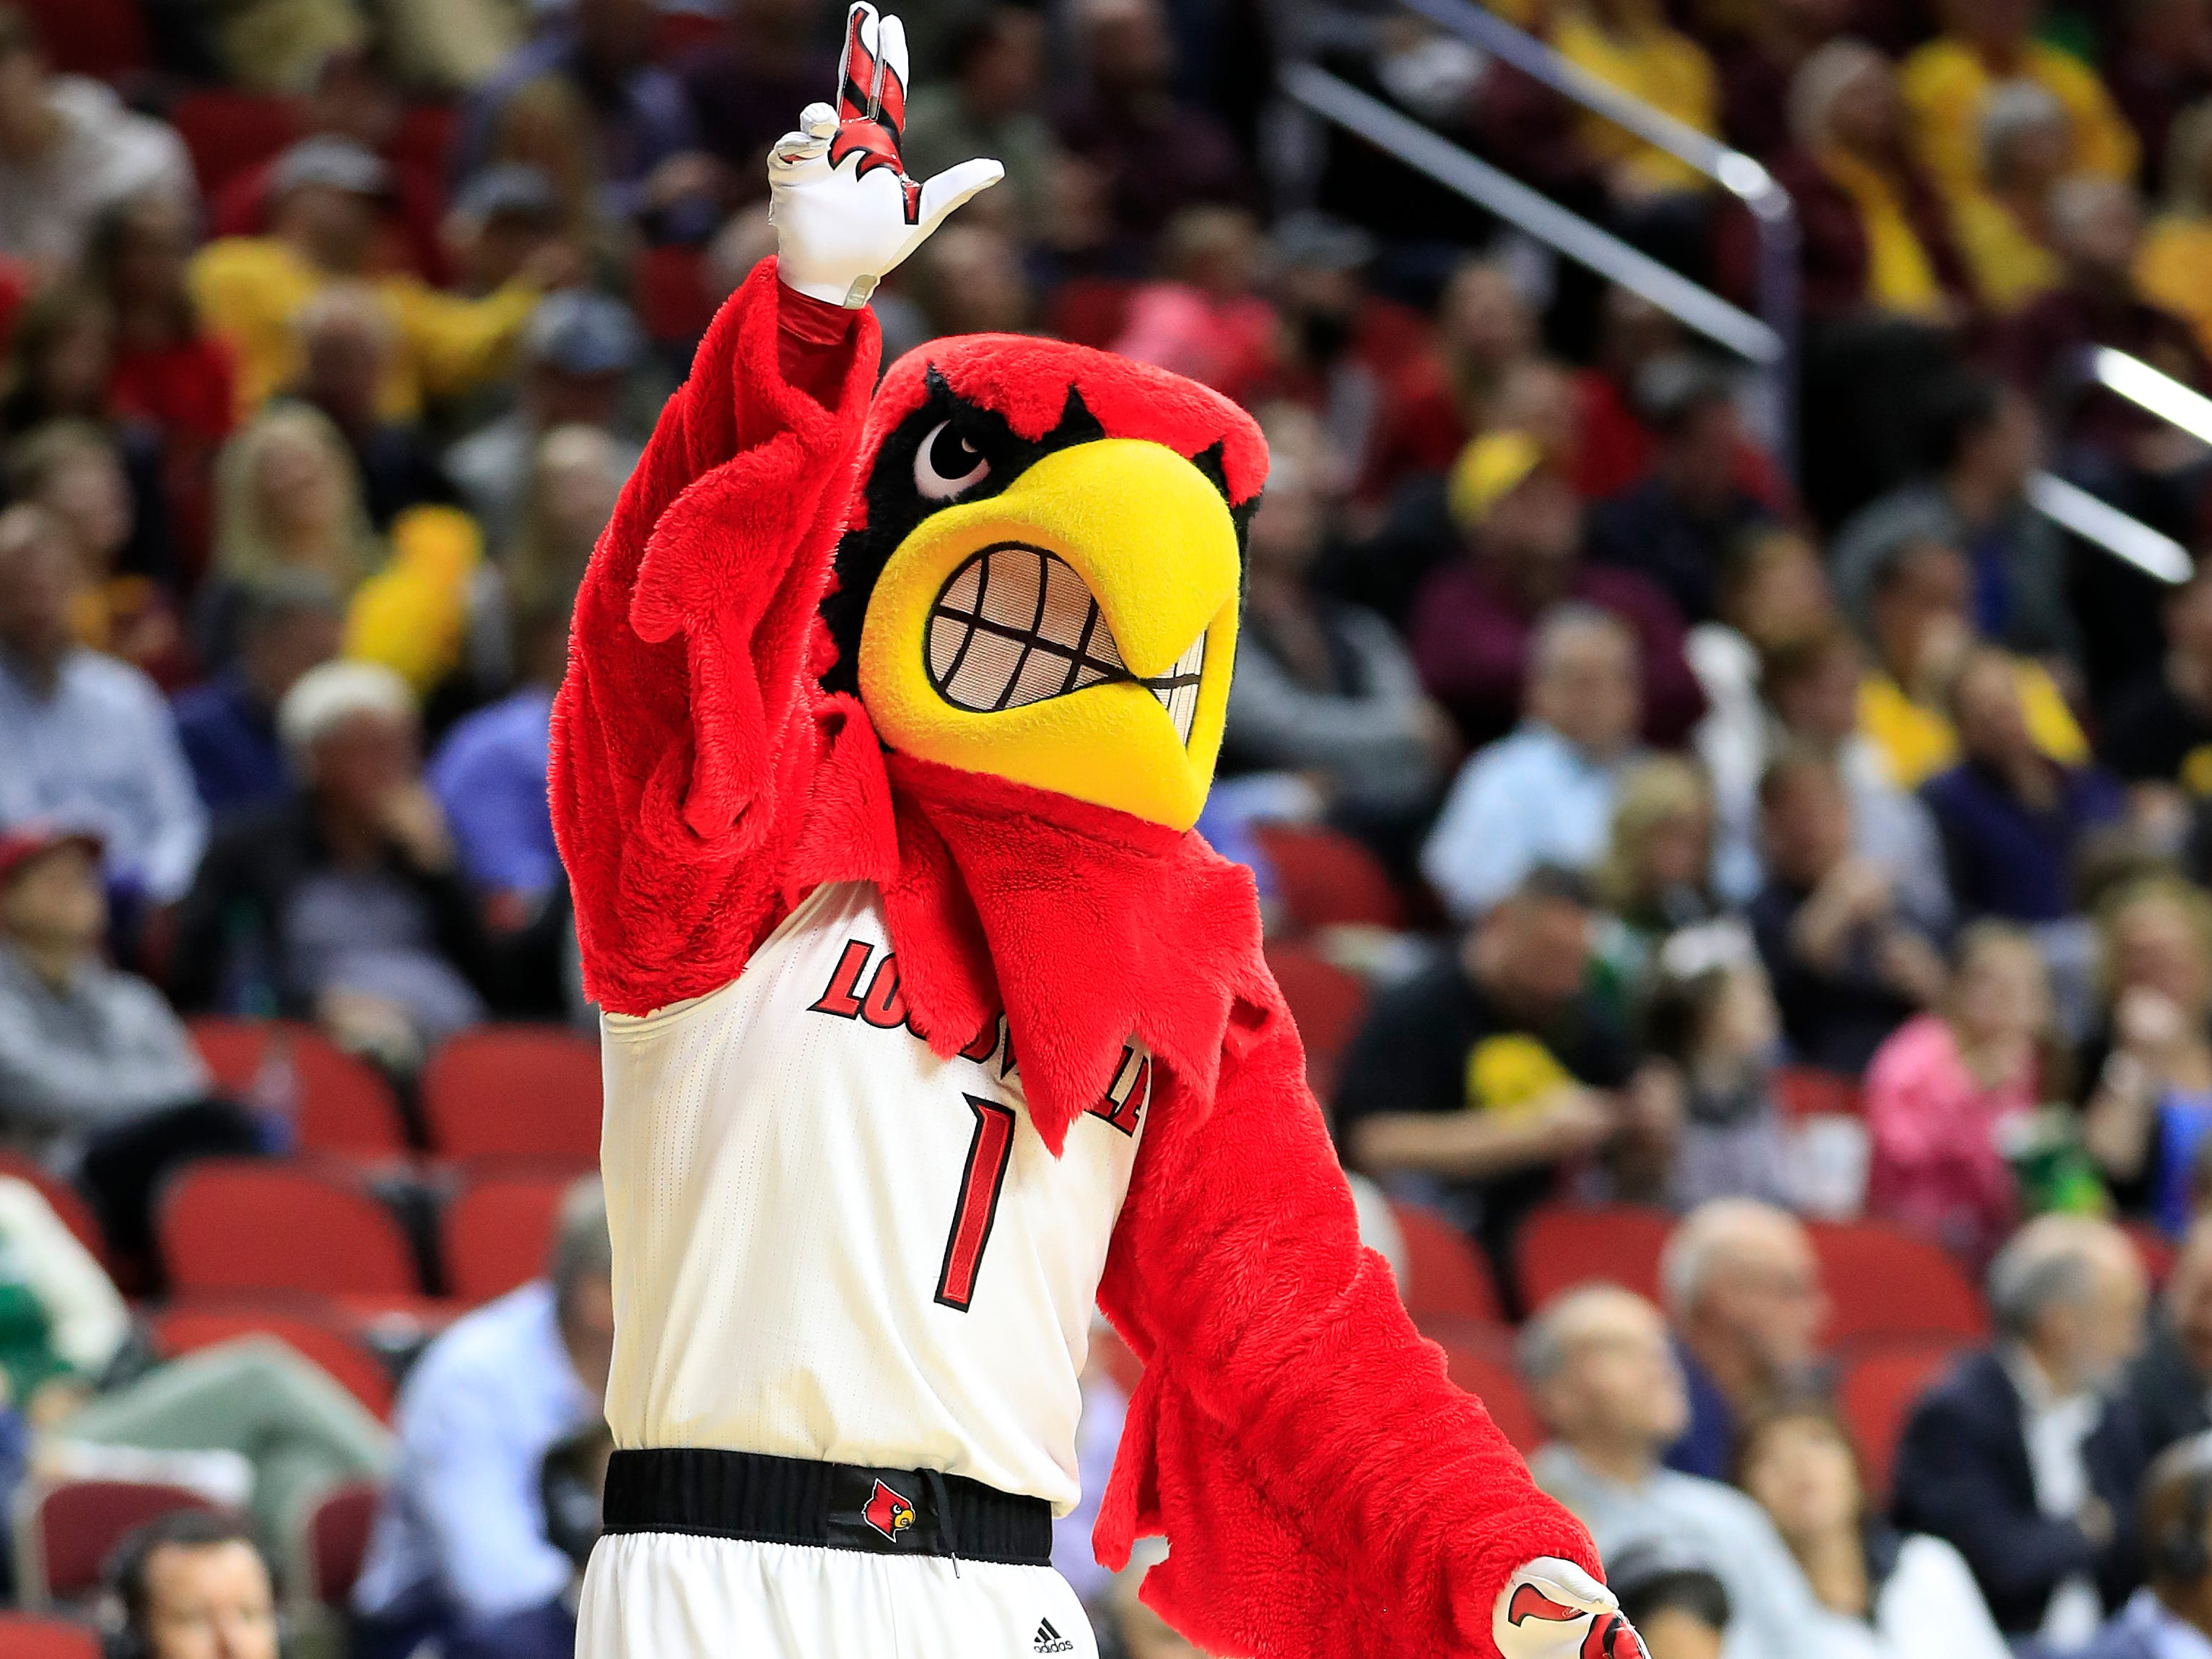 Louisville's Louie the Cardinal is spotted during a first-round game against Minnesota. Who knew a cardinal could look so mad?